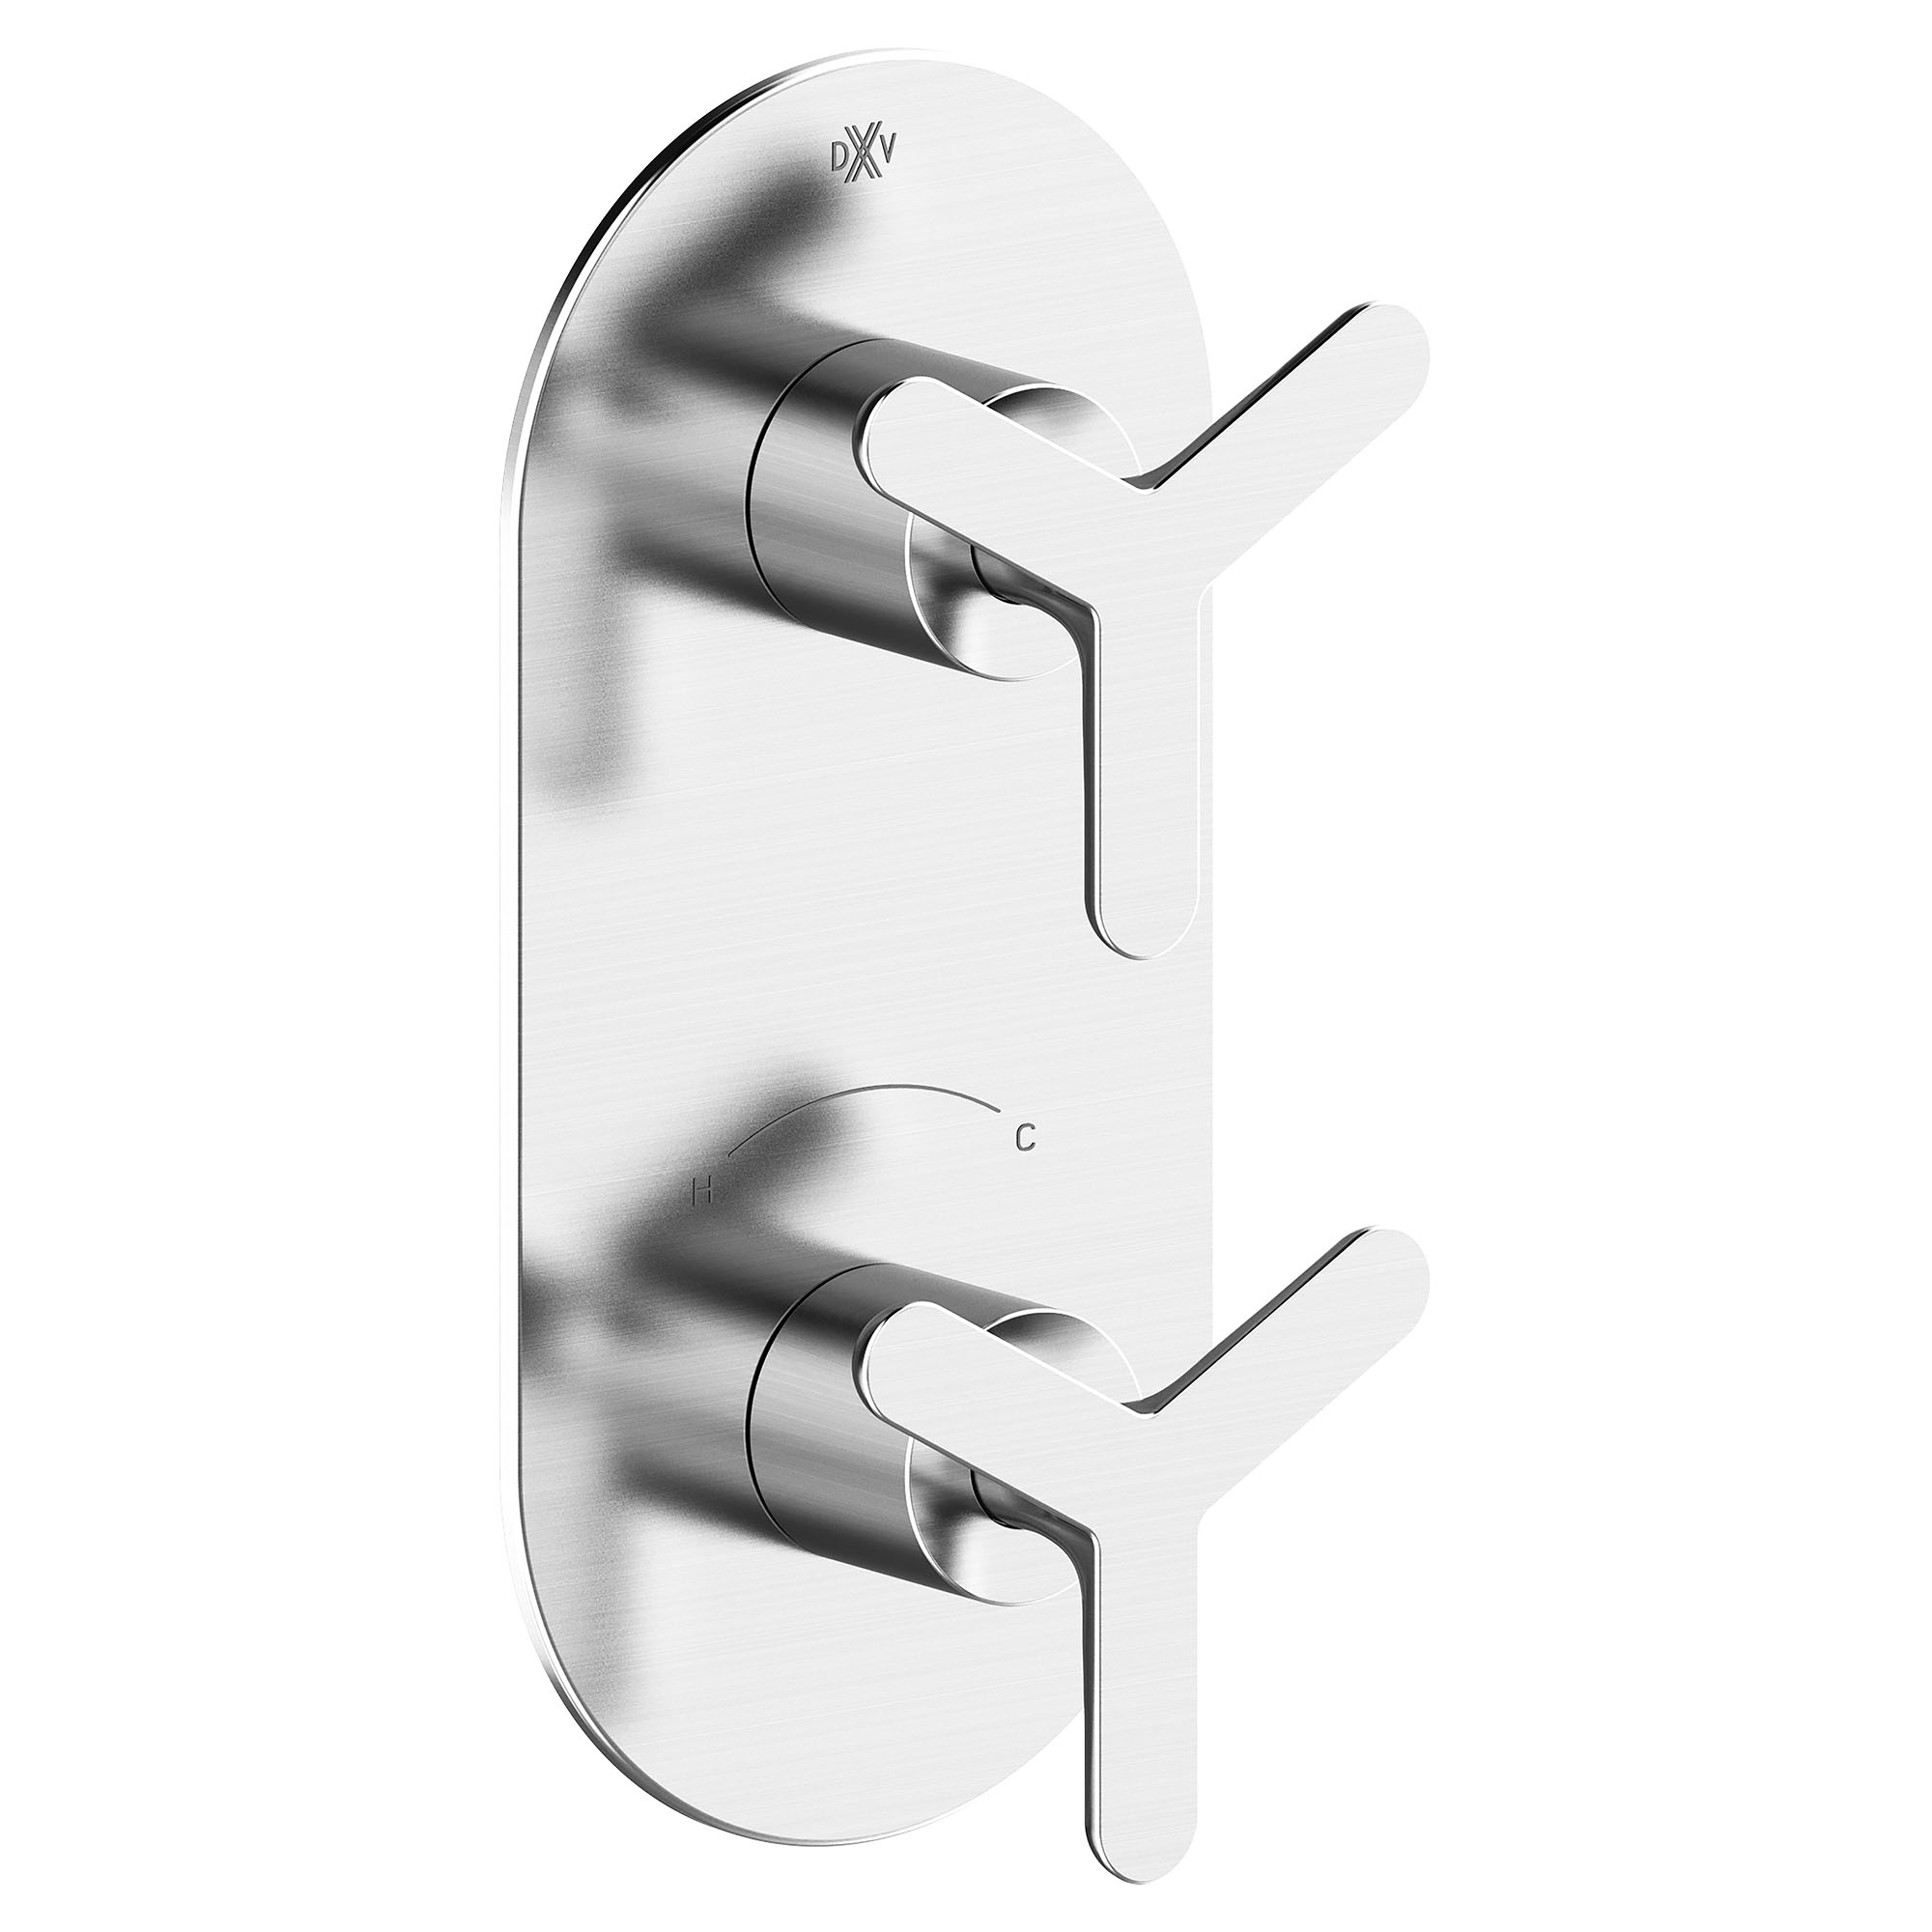 Percy 2-Handle Thermostatic Shower Valve Trim with Tri-Spoke Handles